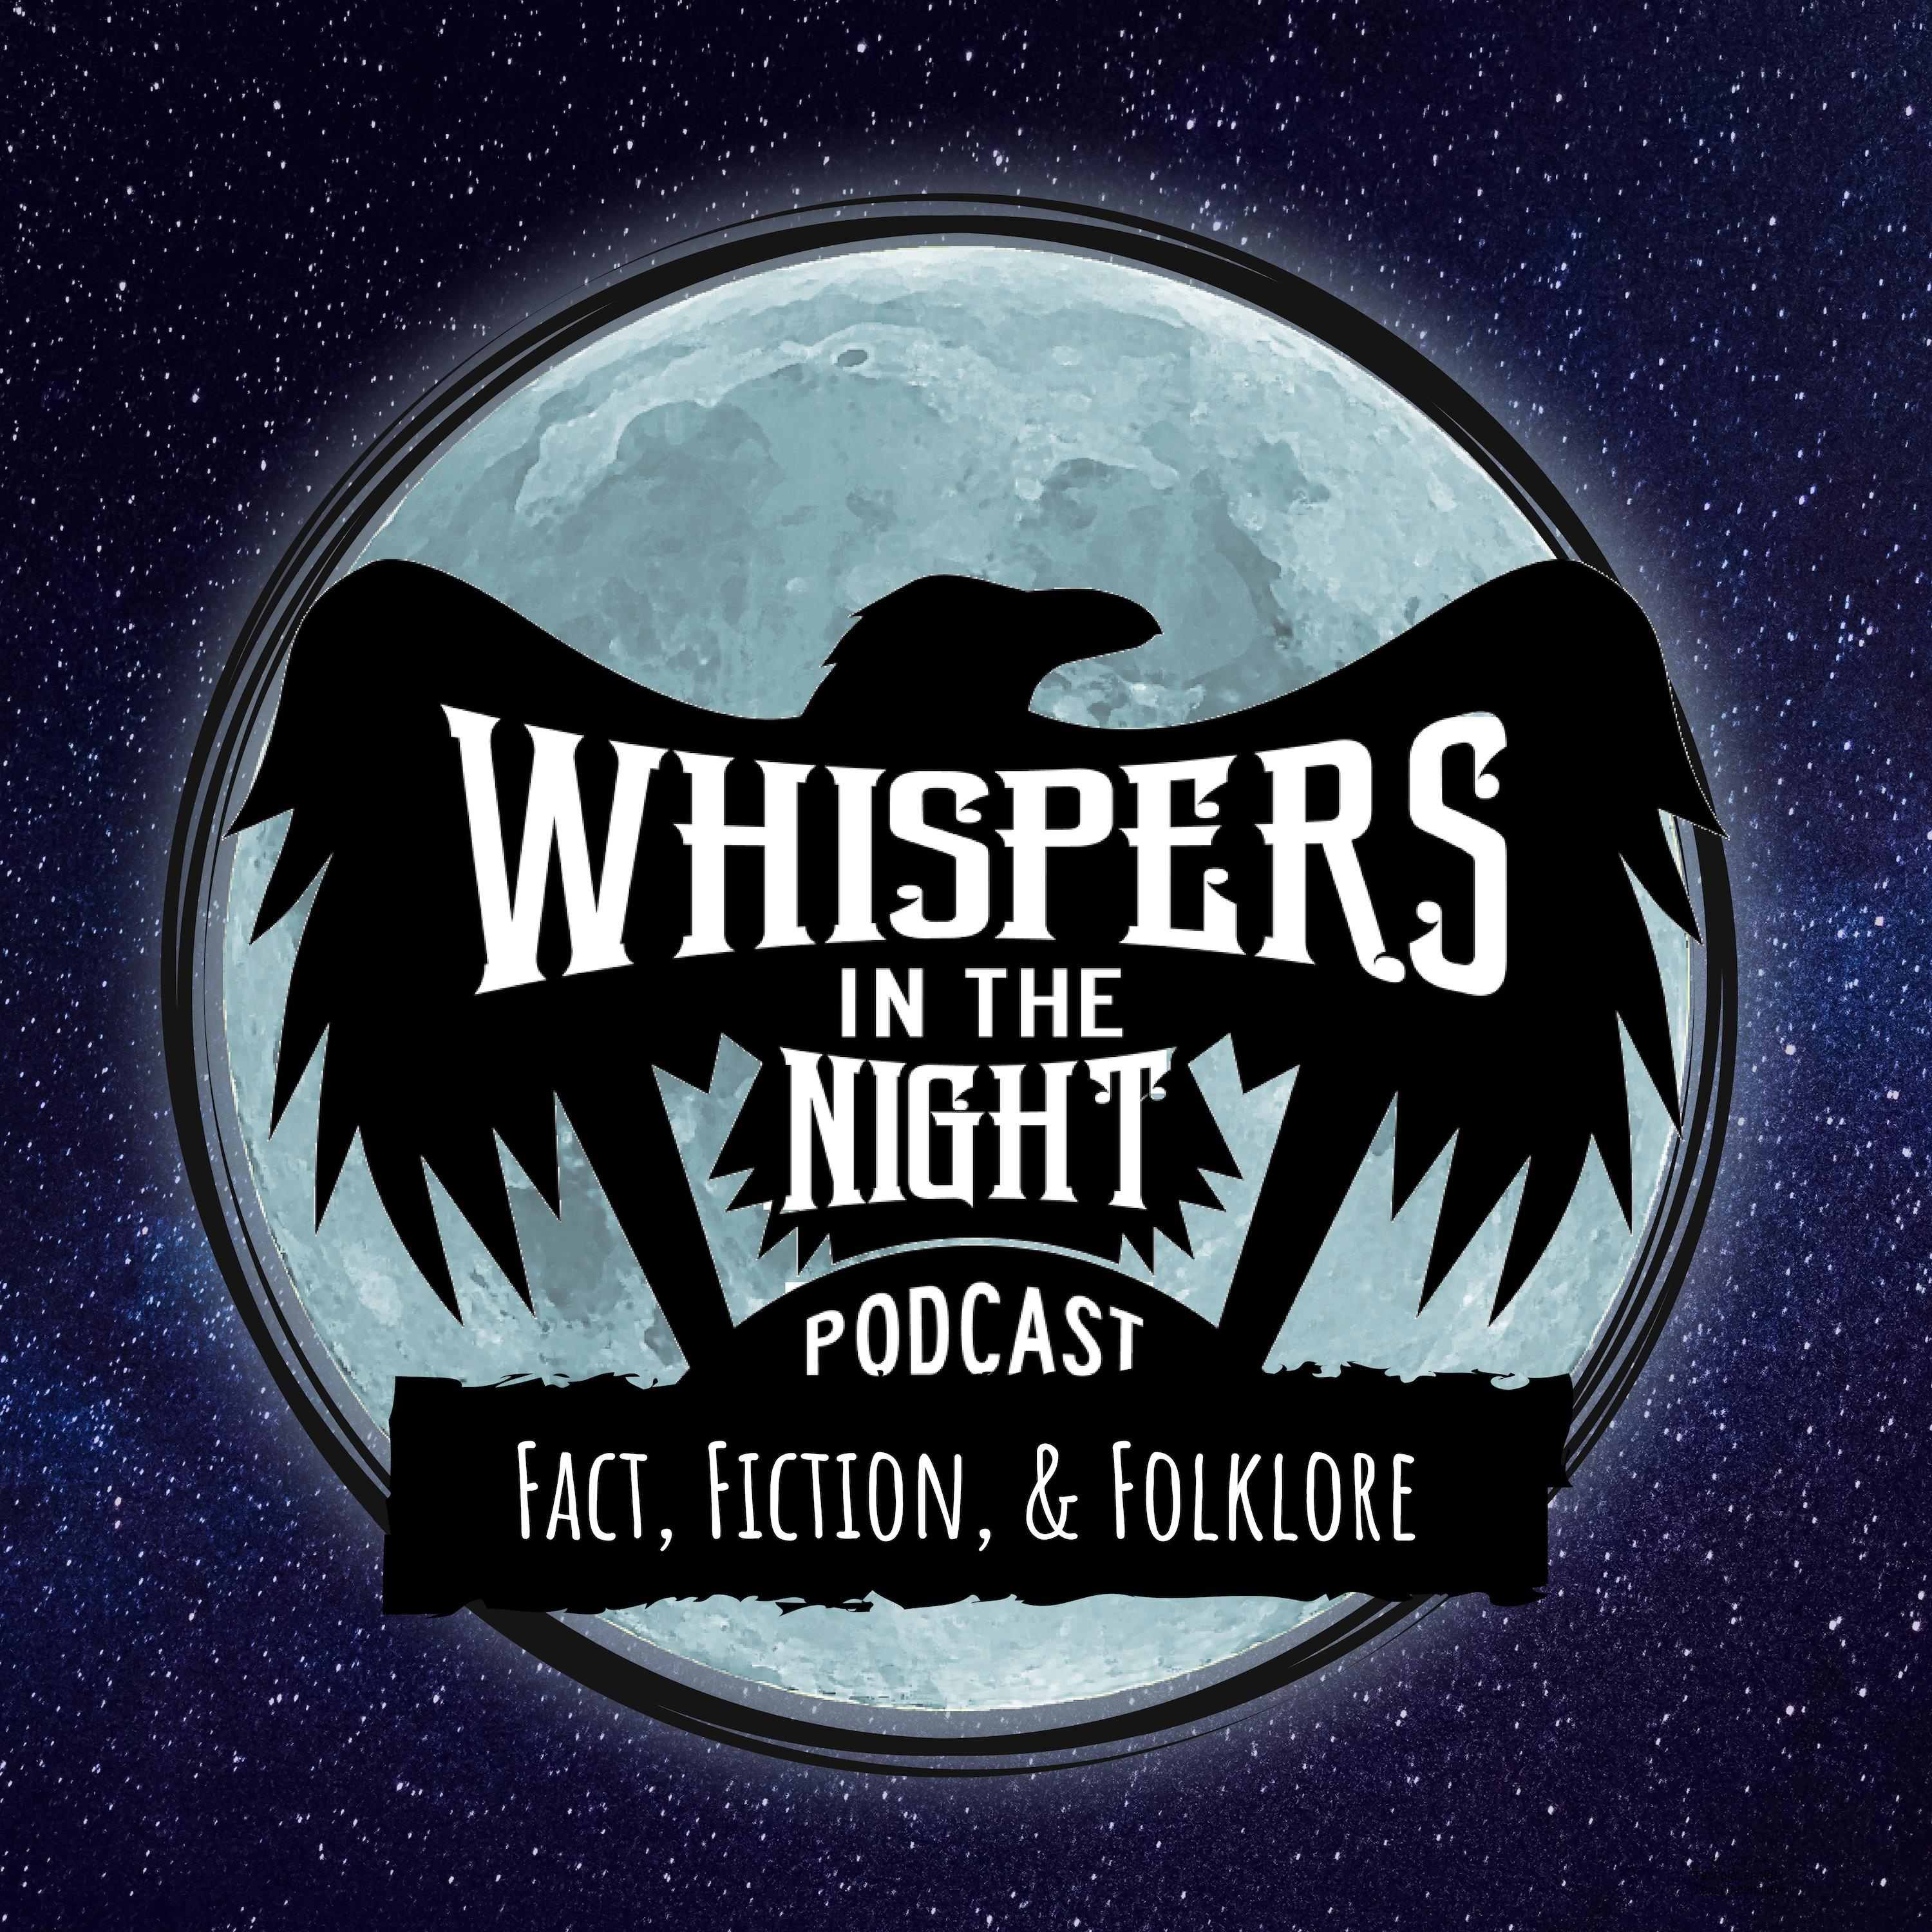 Whispers in the Night | Listen Free on Castbox